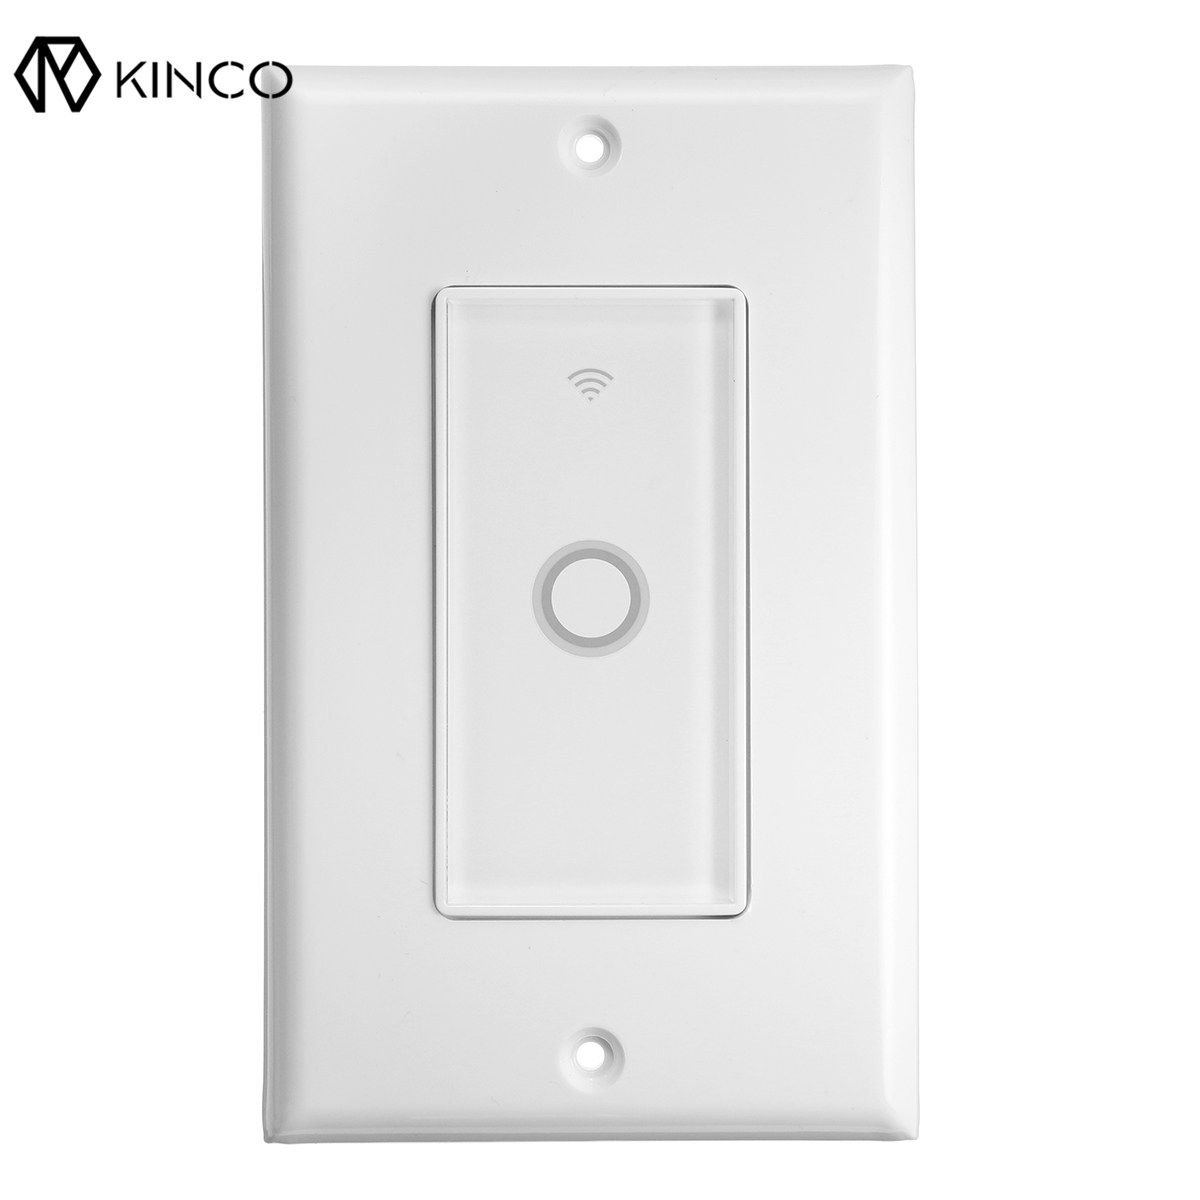 Kinco Modern 110V WIFI Smart Wall Switch Touch Panel Timing APP Remote Control For Alexa/Google Home Assistant